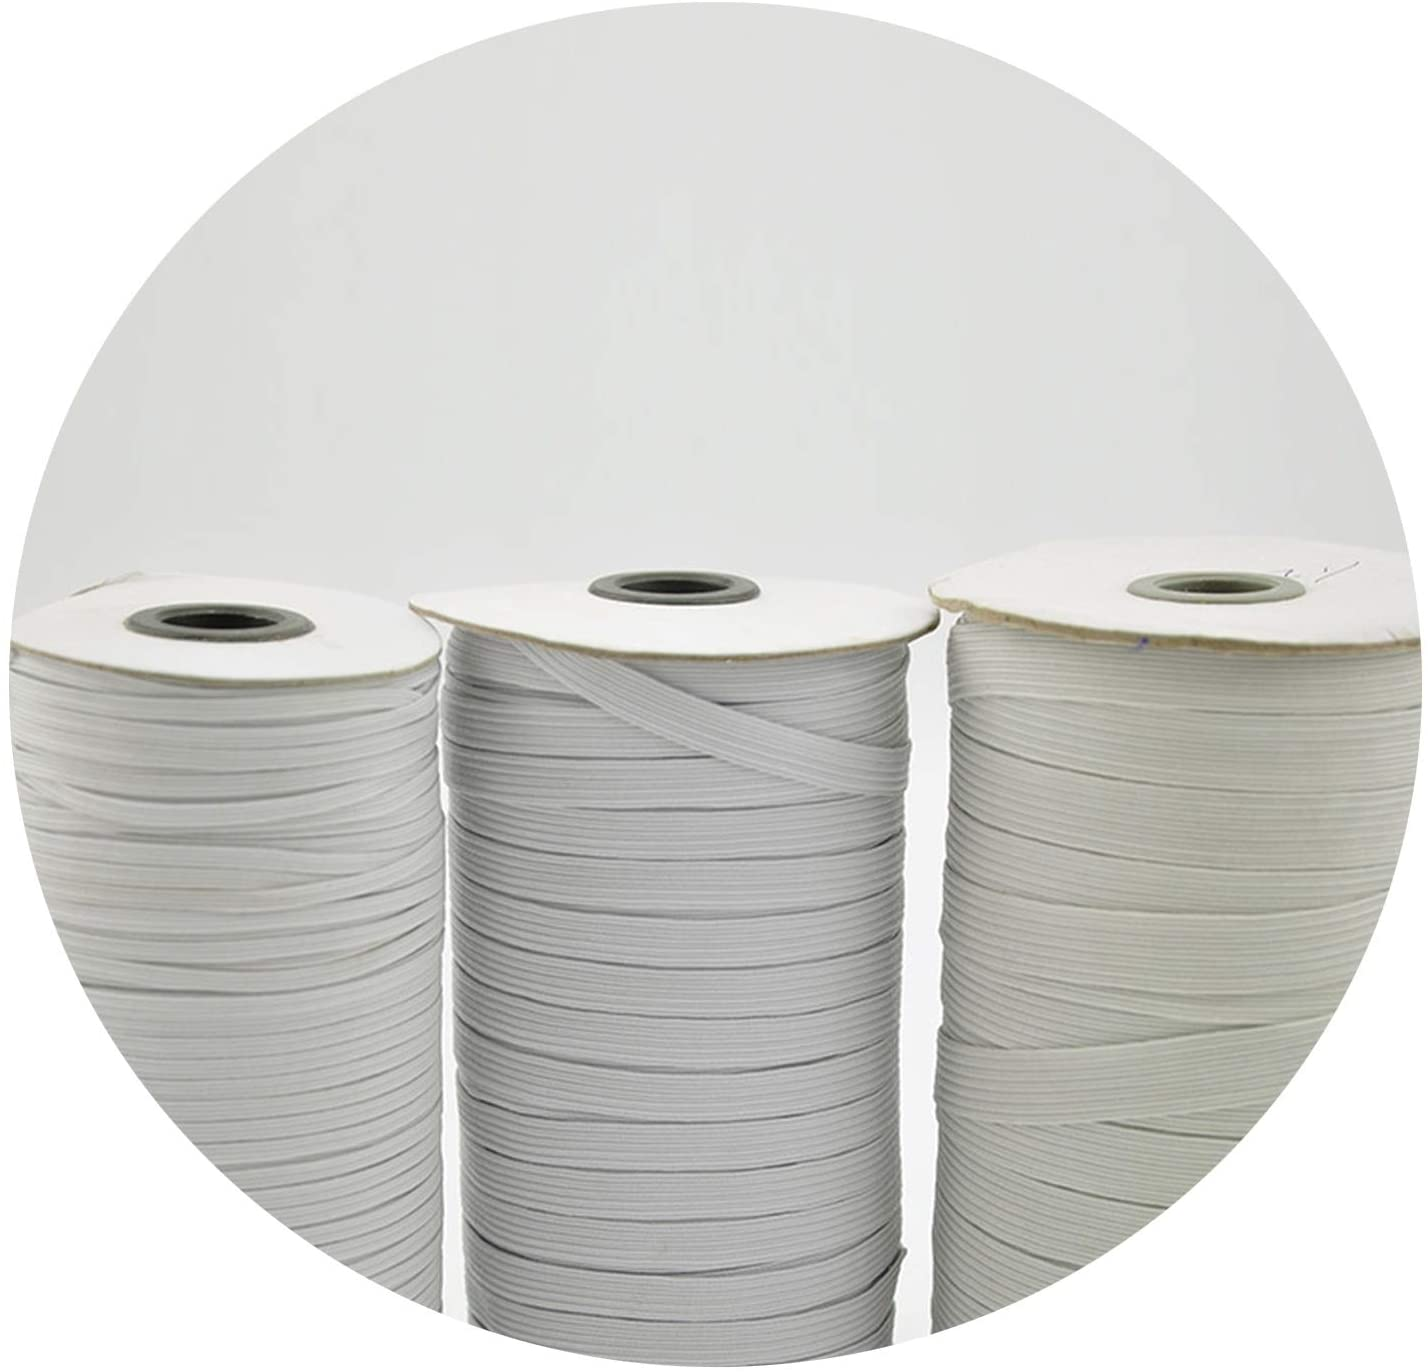 5m/lot Elastic Band for DIY Highest Elastic Bands Garment Trousers Sewing Accessories,White 0.7cm